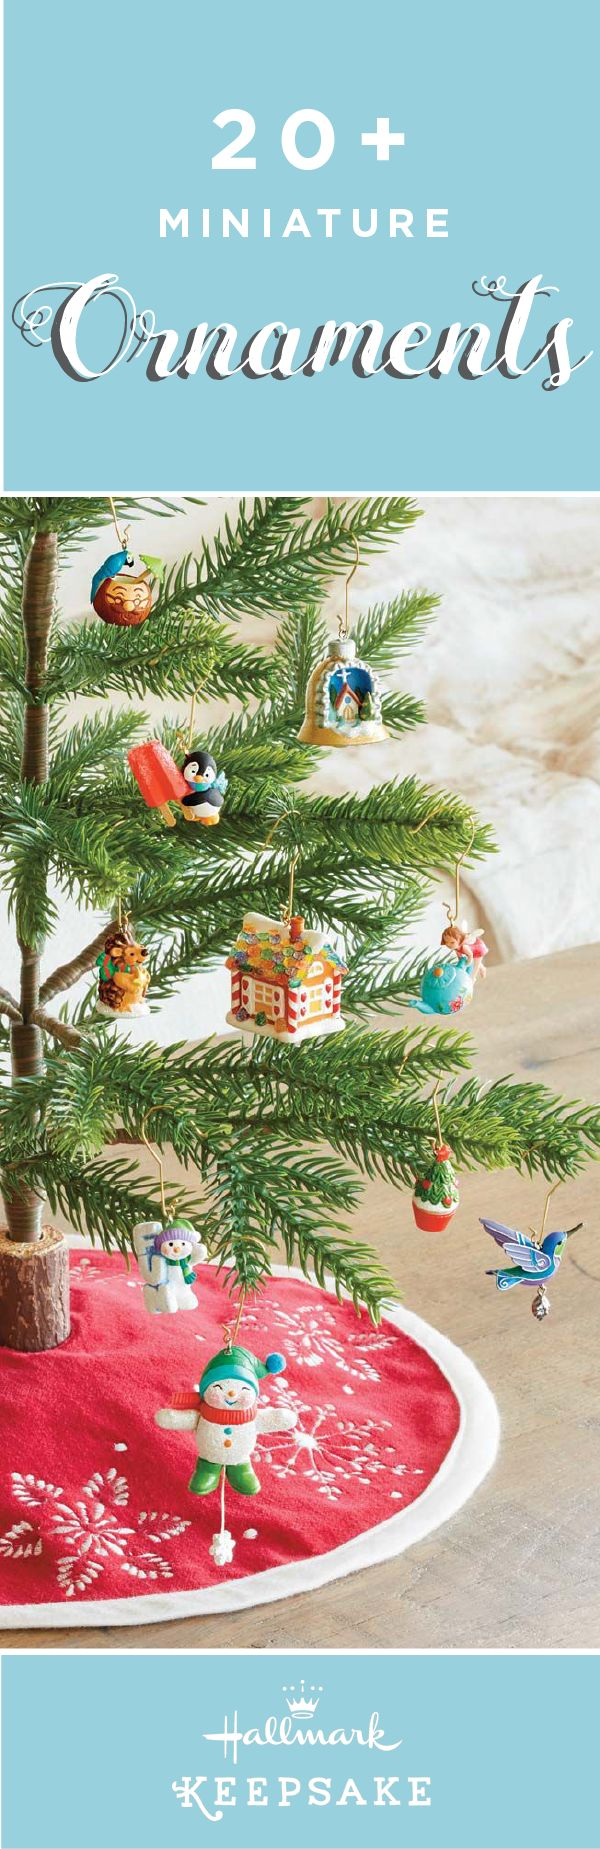 215 best images about keepsake ornaments on pinterest for How did the christmas tree tradition start